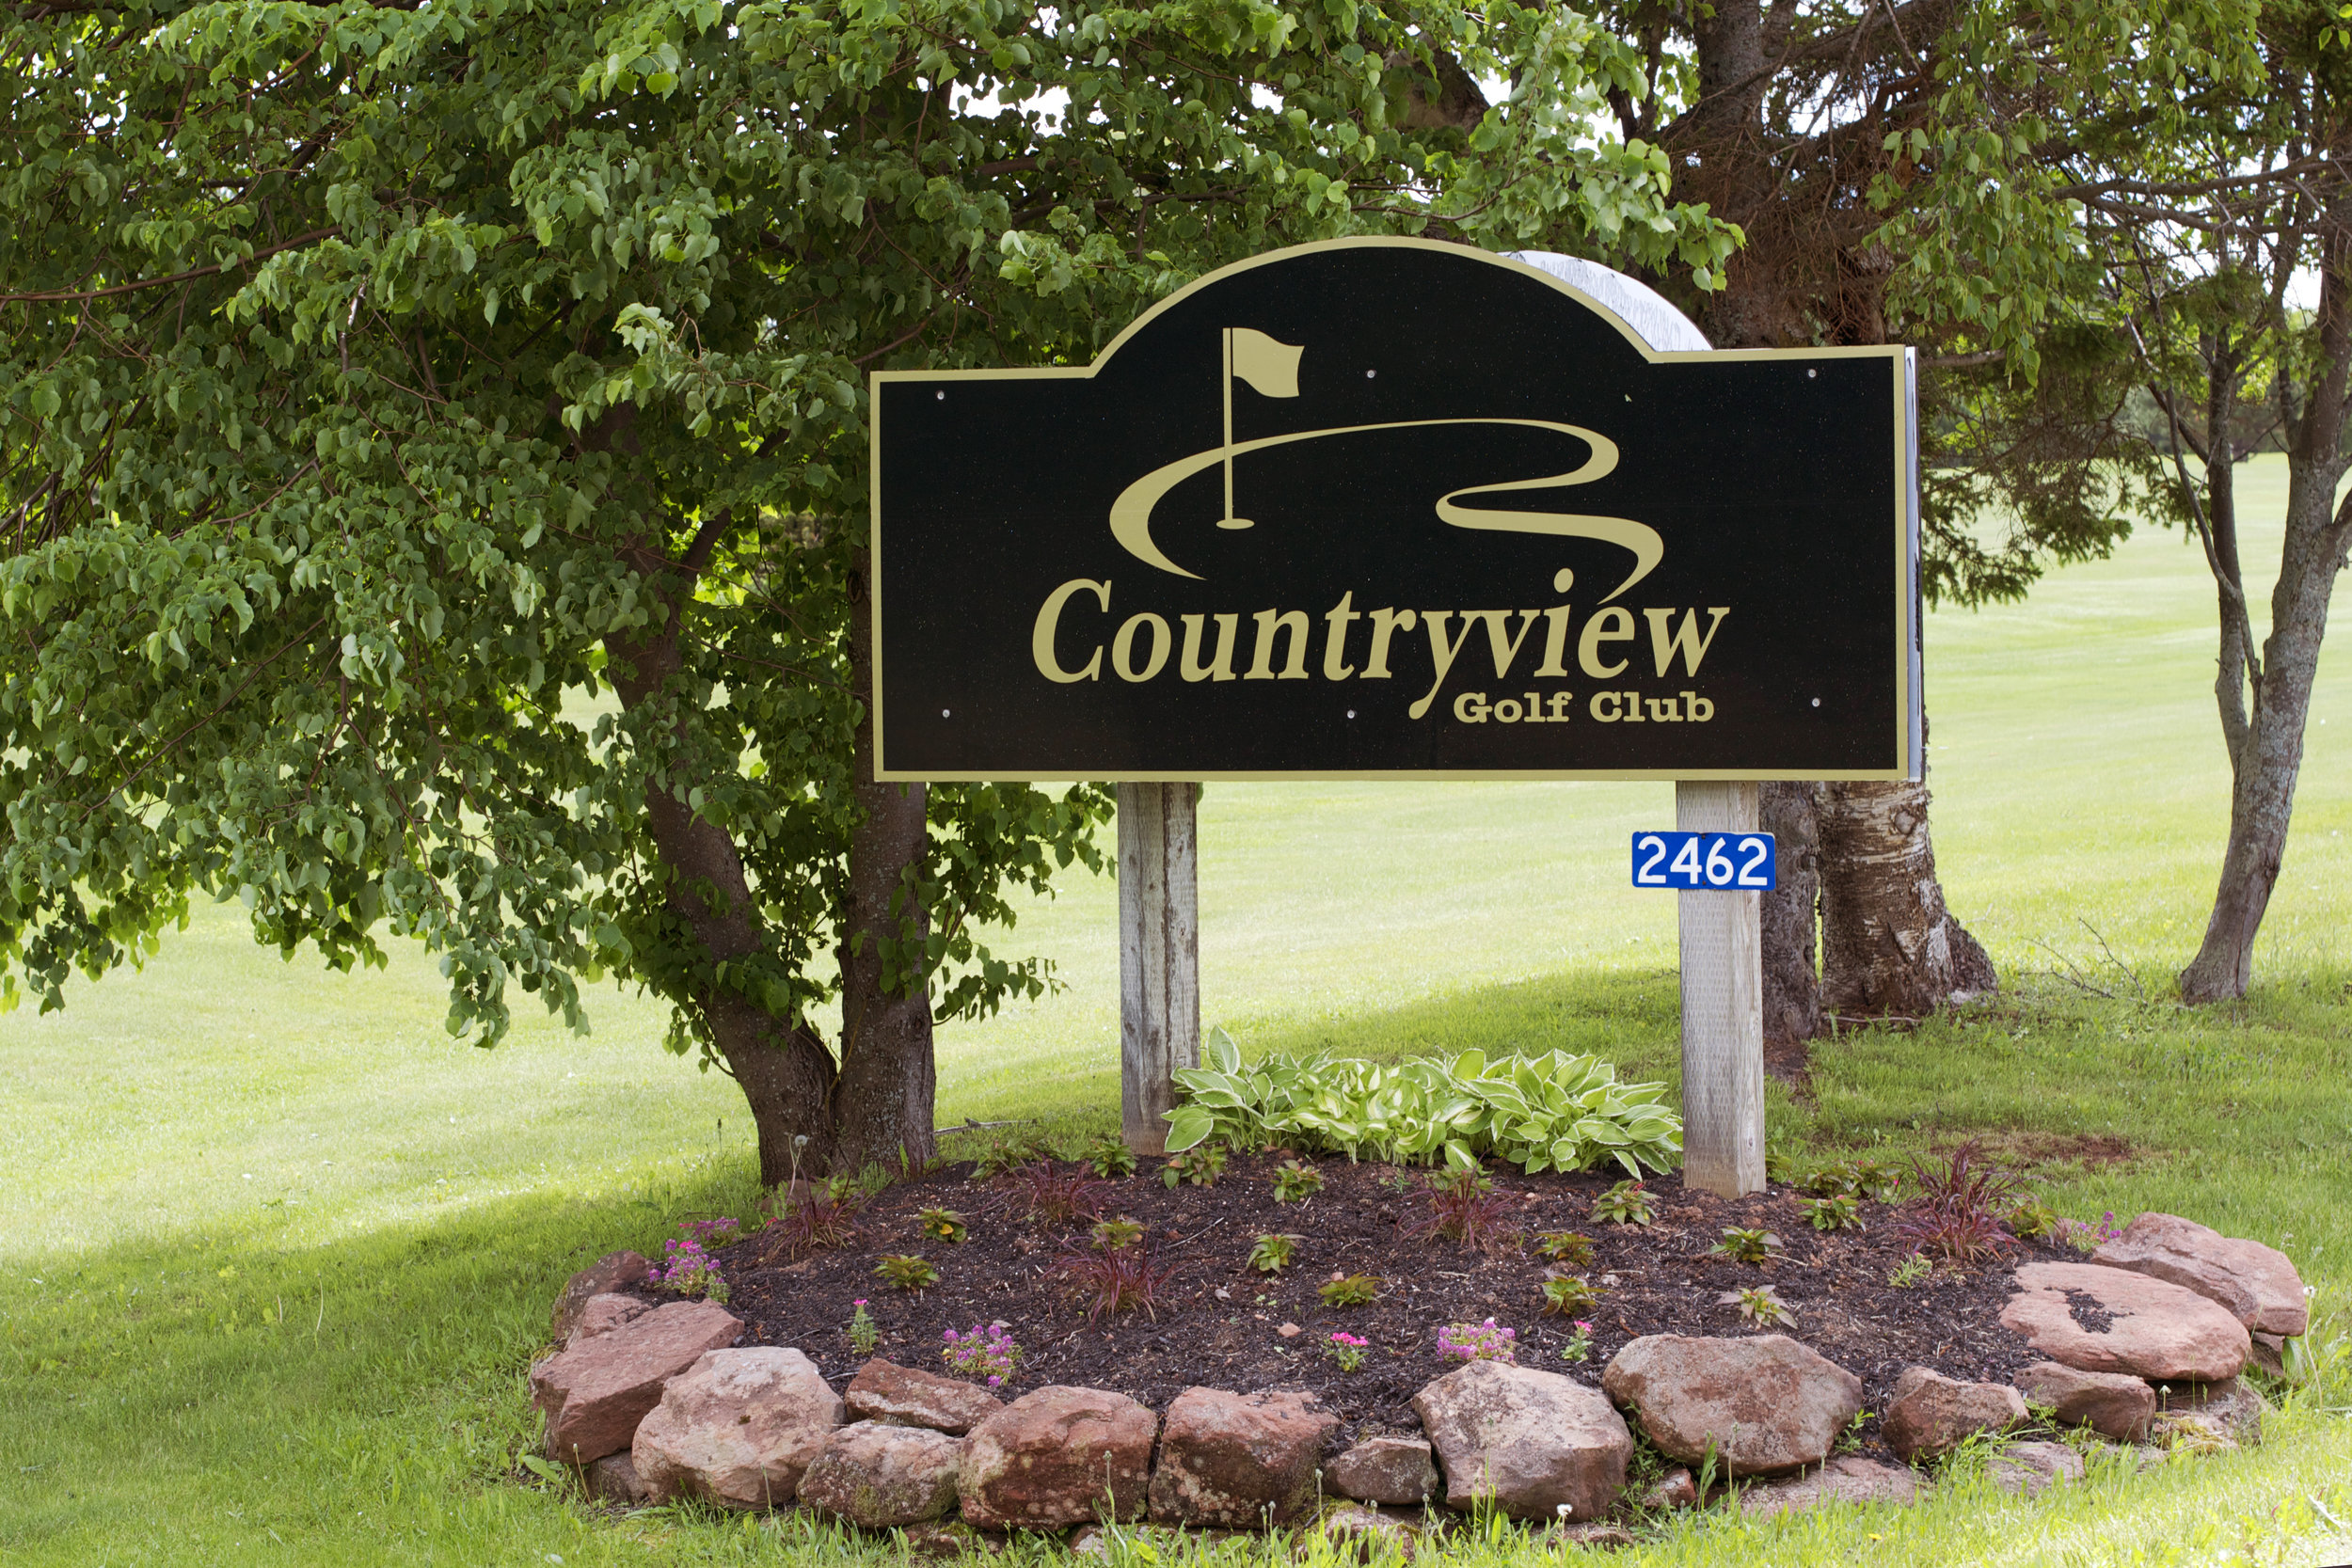 Countryview-golf-course-sign.jpg